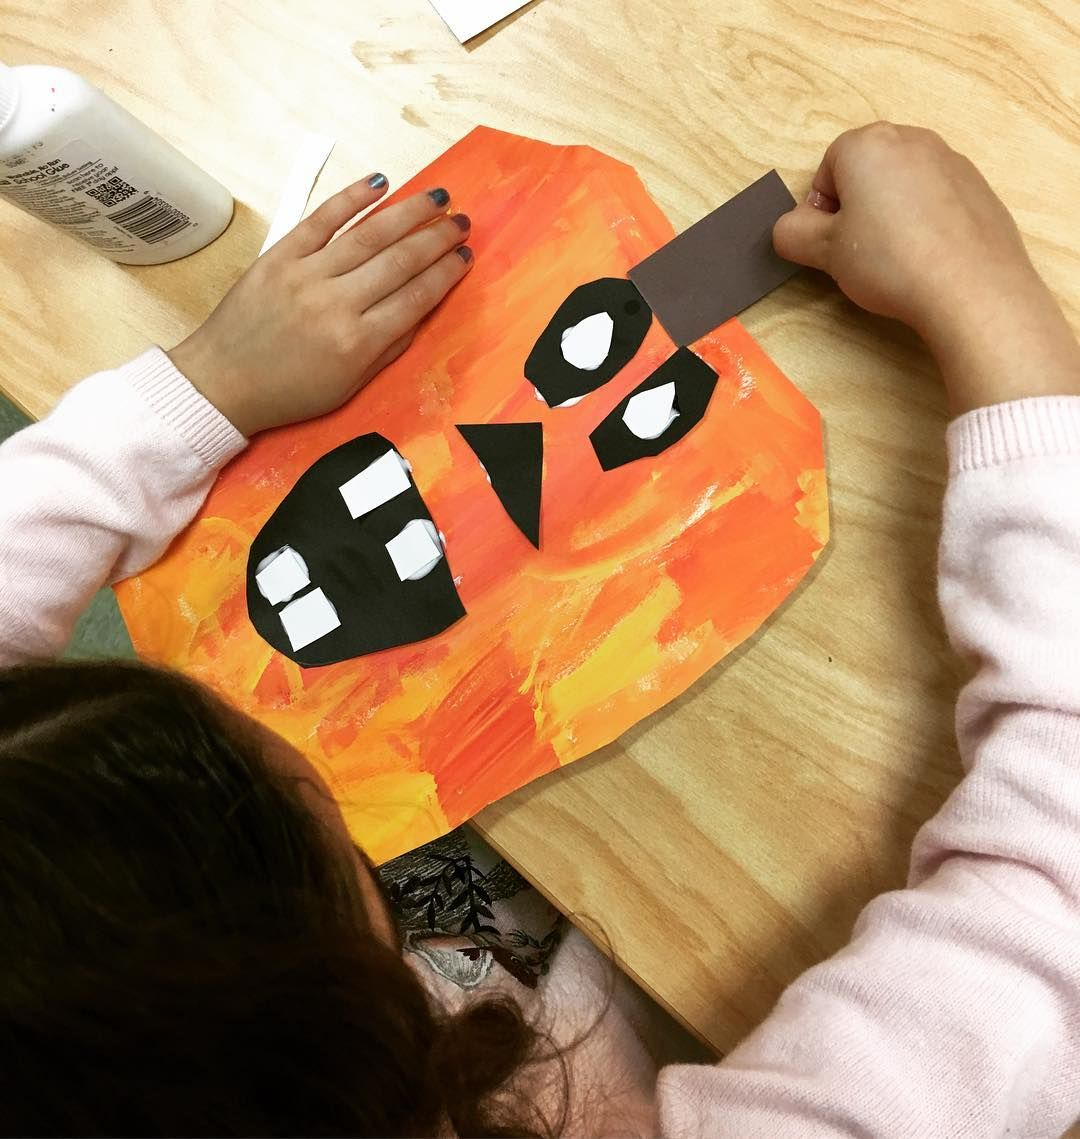 Kindergarten Explored Mixing Paint Then Used Shapes To